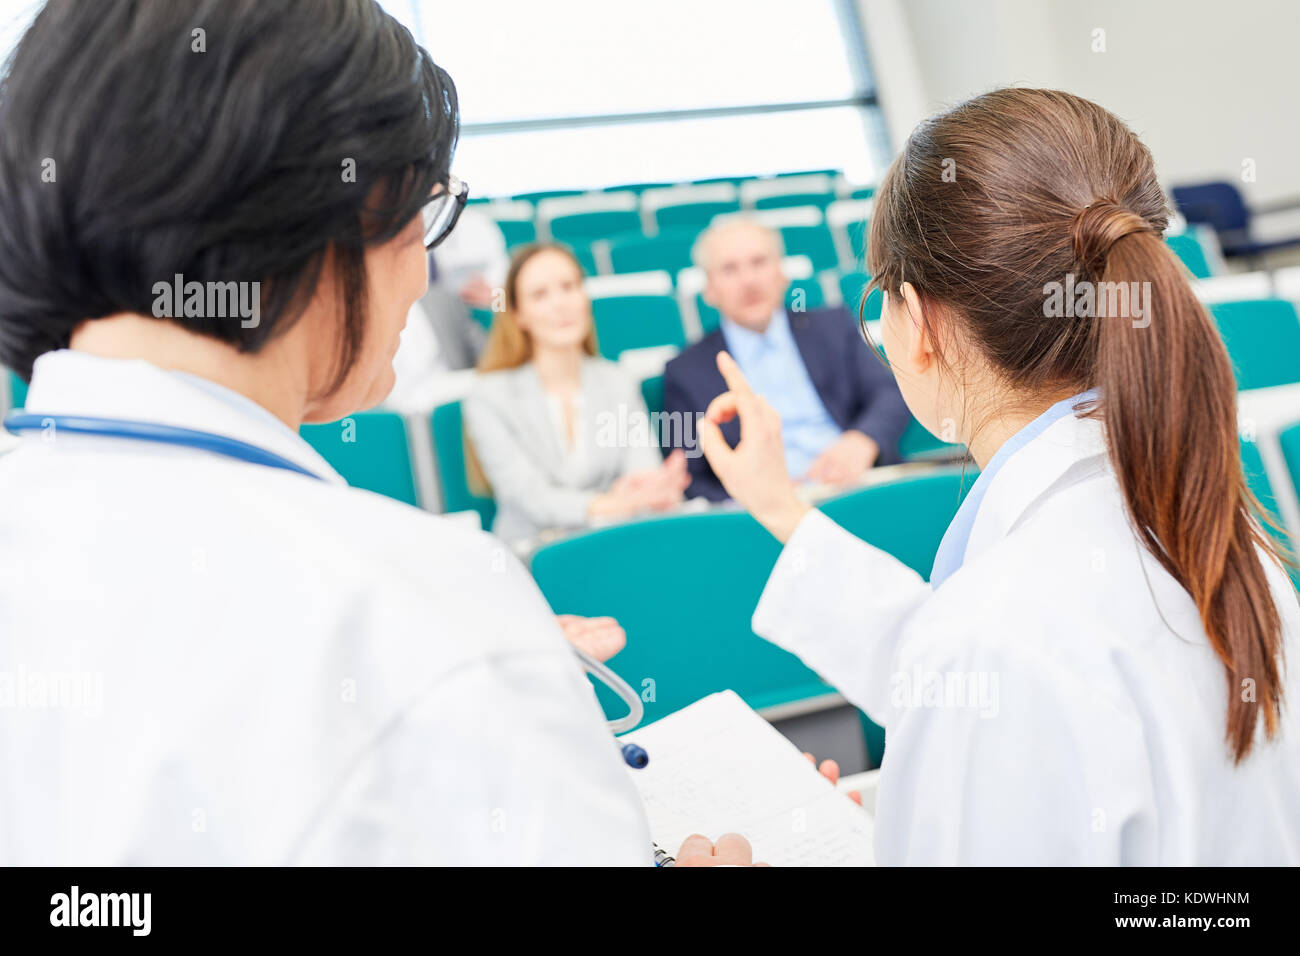 Young woman as student taking test in medical school - Stock Image